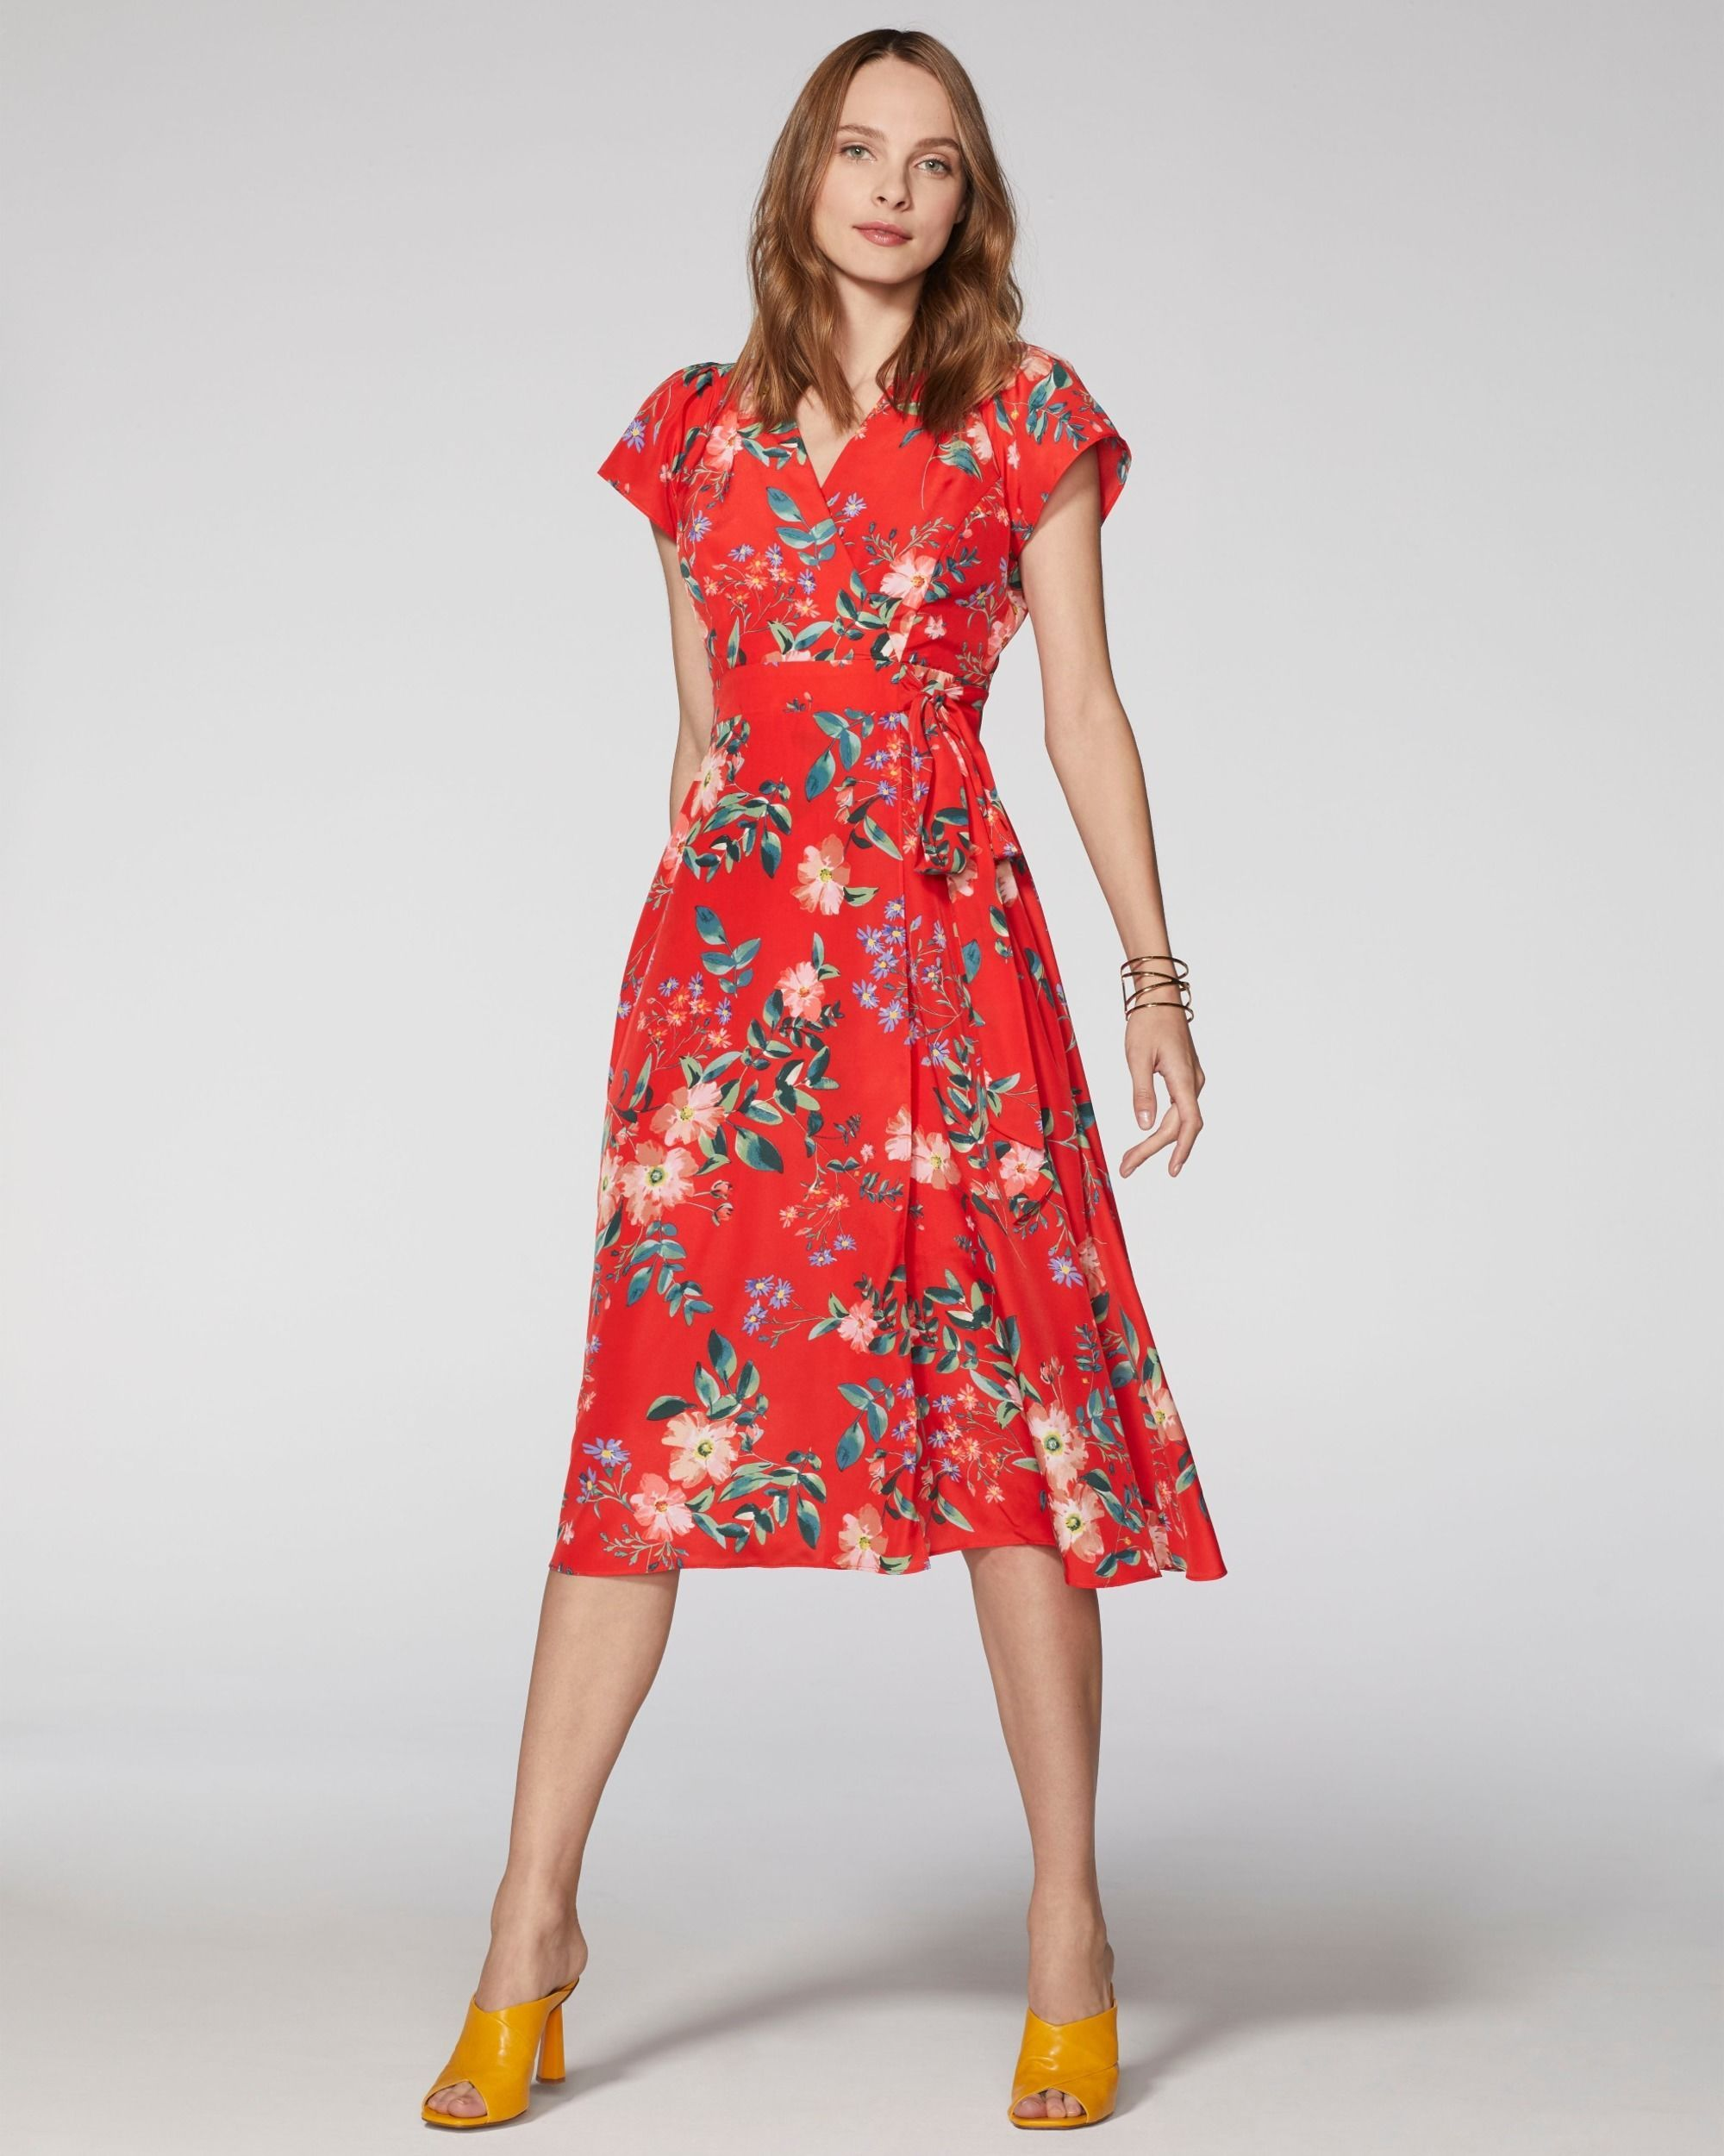 Vince Camuto Floral Print Wrap Dress Red Multi In 2020 Summer Dresses Floral Dress Casual Floral Dress Summer [ 2501 x 2000 Pixel ]